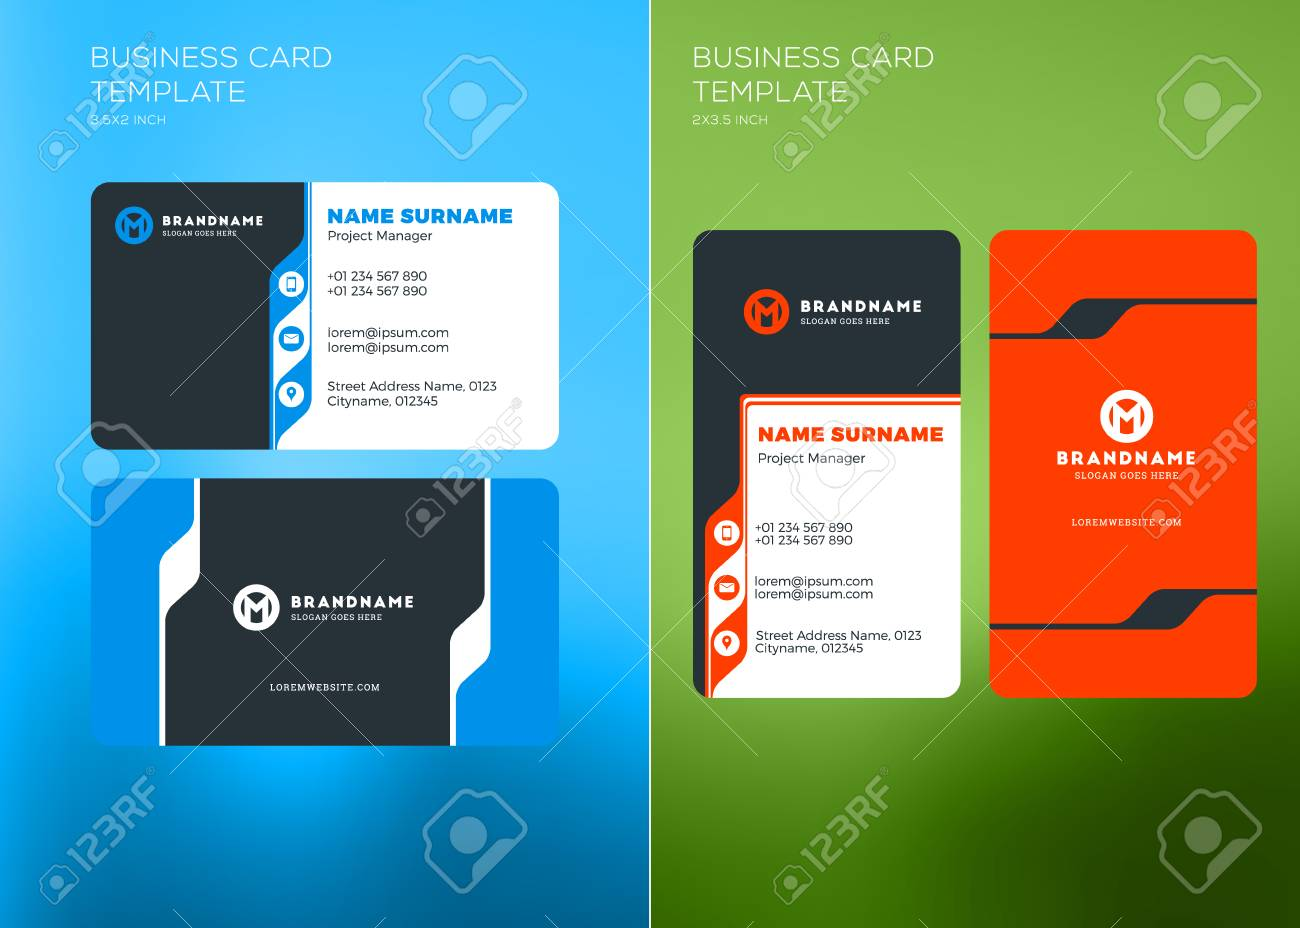 Corporate business card print template vertical and horizontal corporate business card print template vertical and horizontal business card templates vector illustration colourmoves